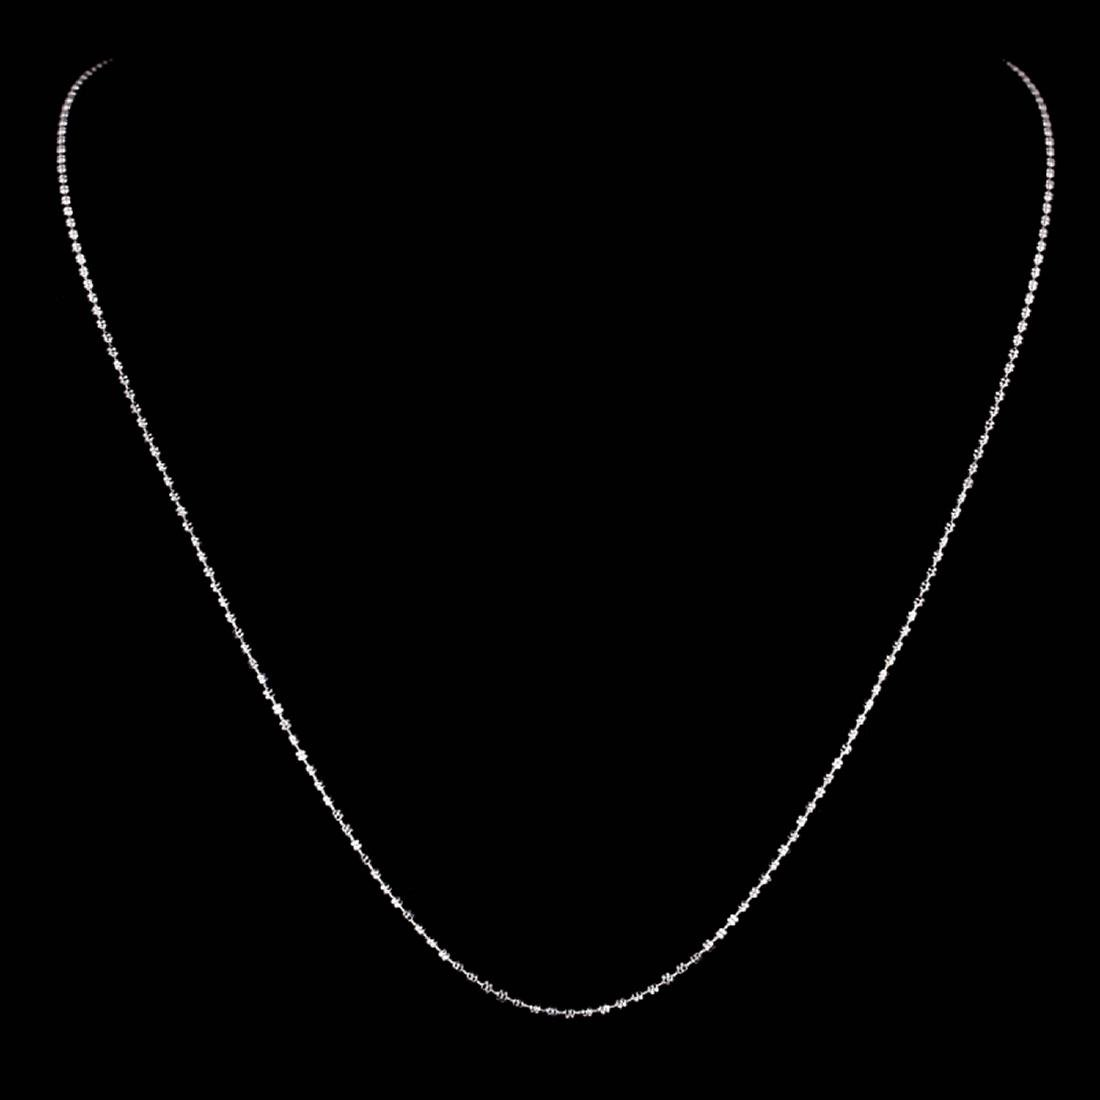 *Fine Jewelry 14 KT White Gold, 3.6GR, 18'' Double Bead